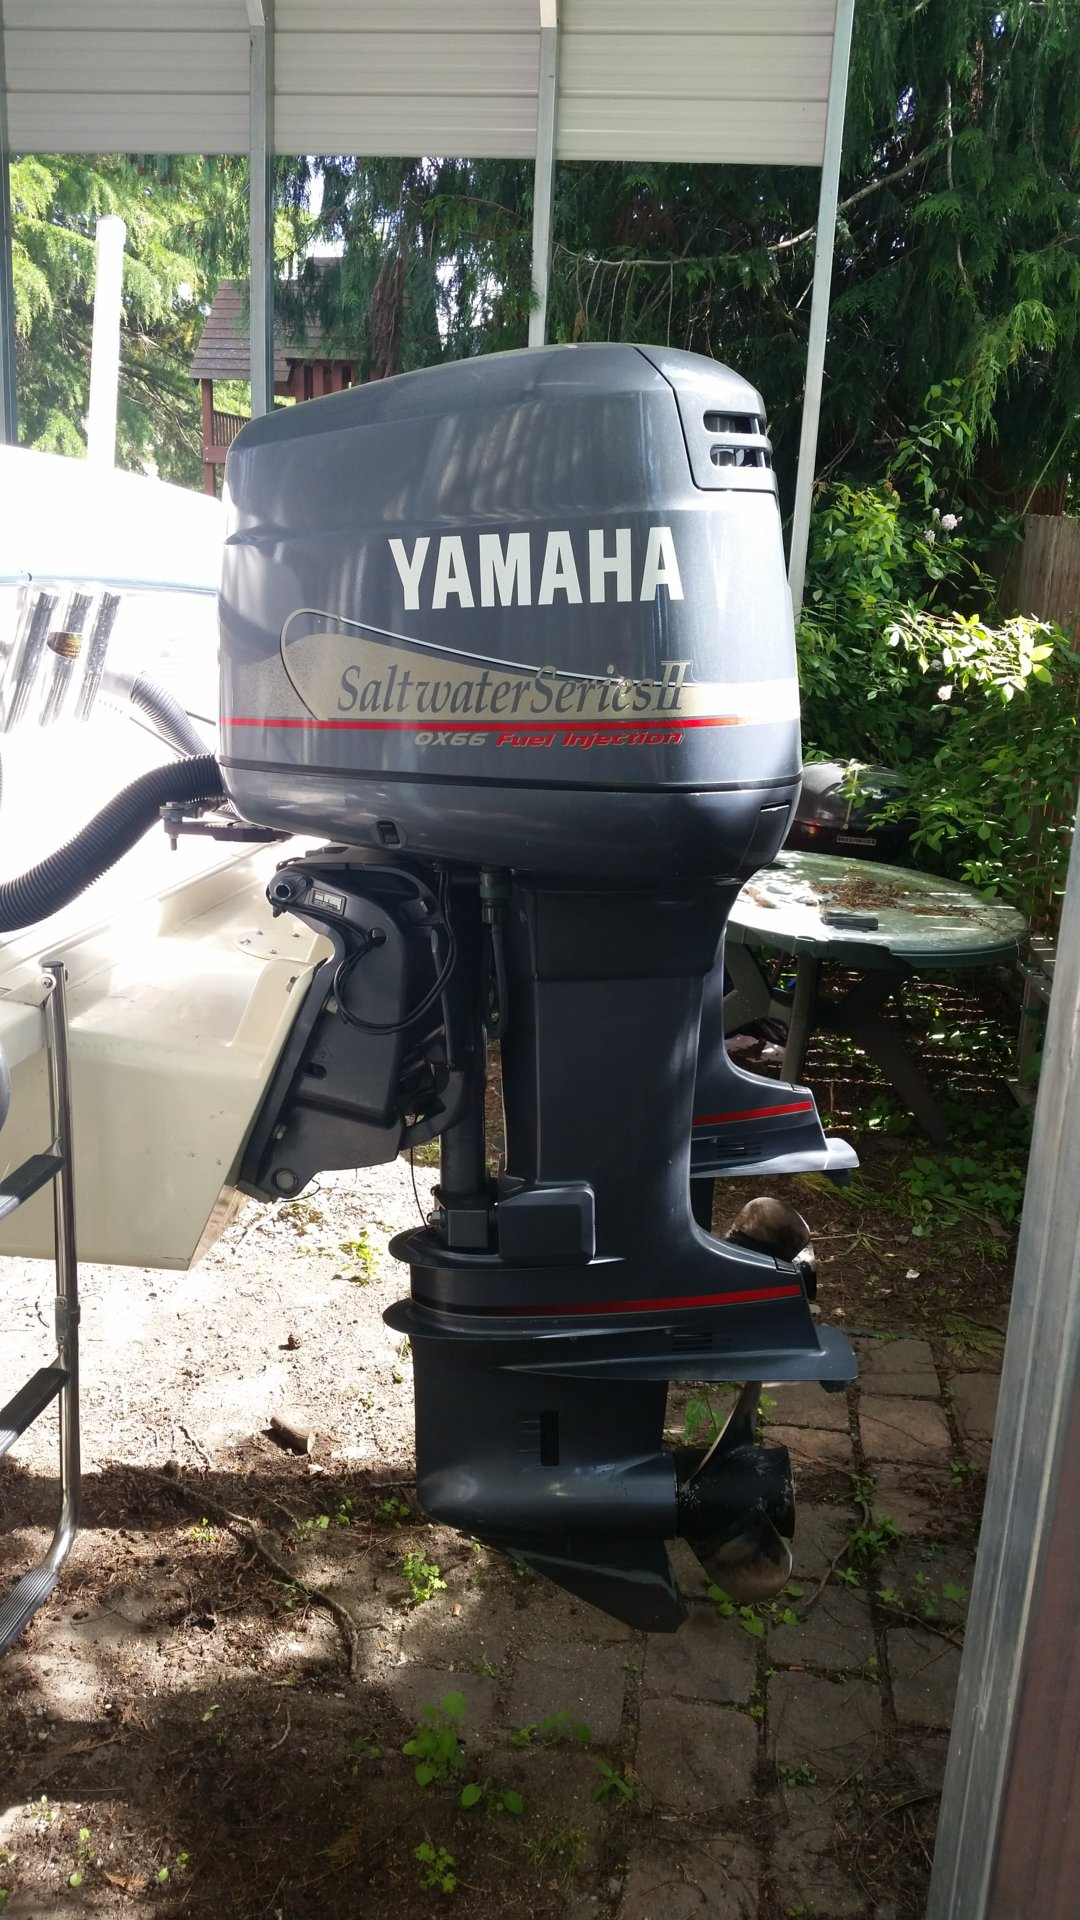 99 Yamaha Saltwater Series Ii Ox66 200 Hp Outboards Bloodydecks Outboard Wiring Portmotor